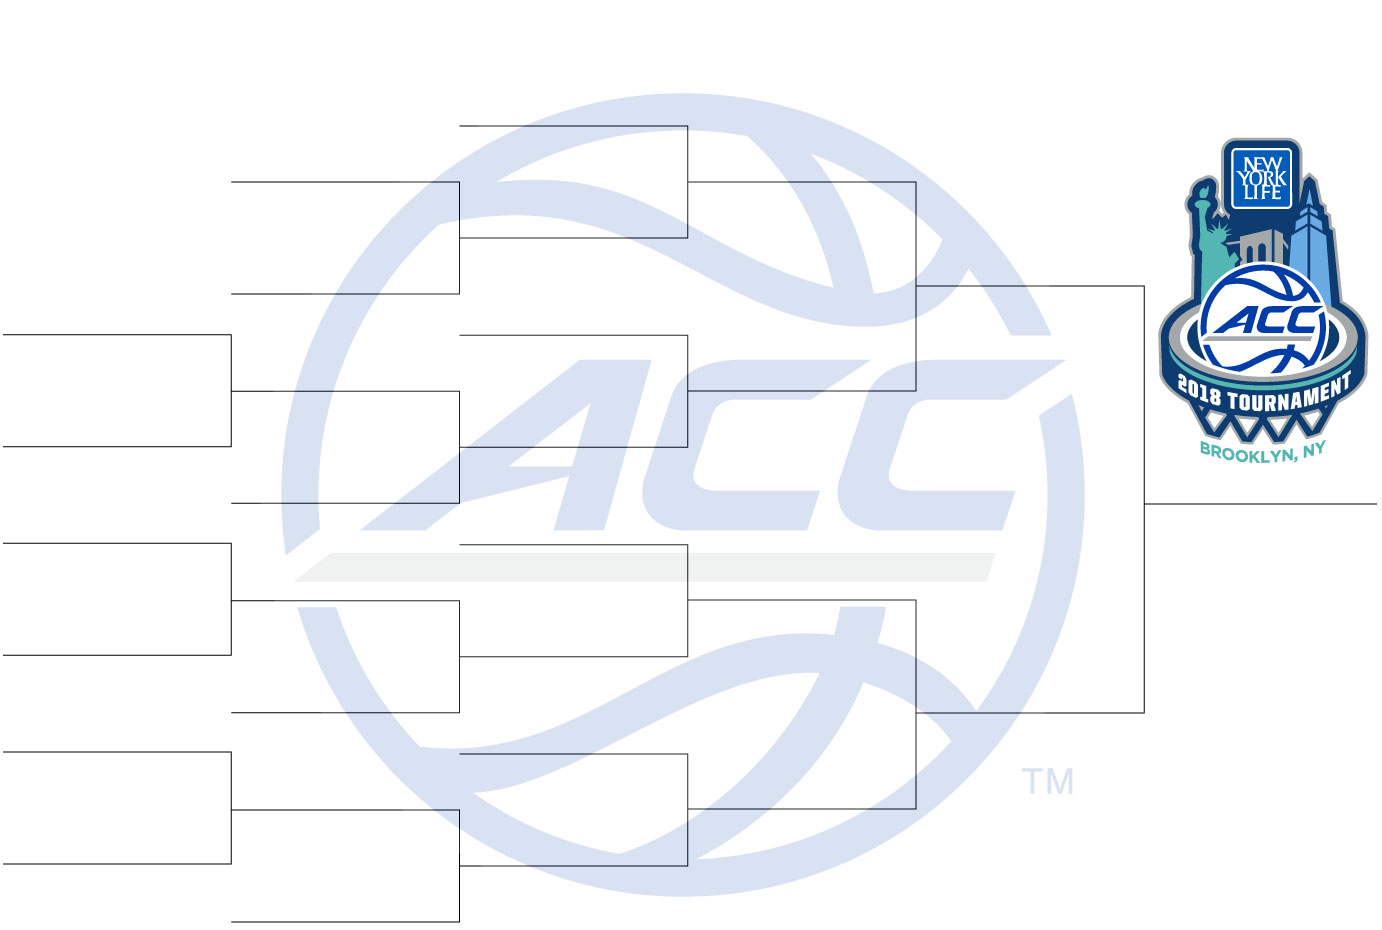 graphic relating to Acc Printable Bracket called Via Image Congress Acc Mens Basketball Event Bracket